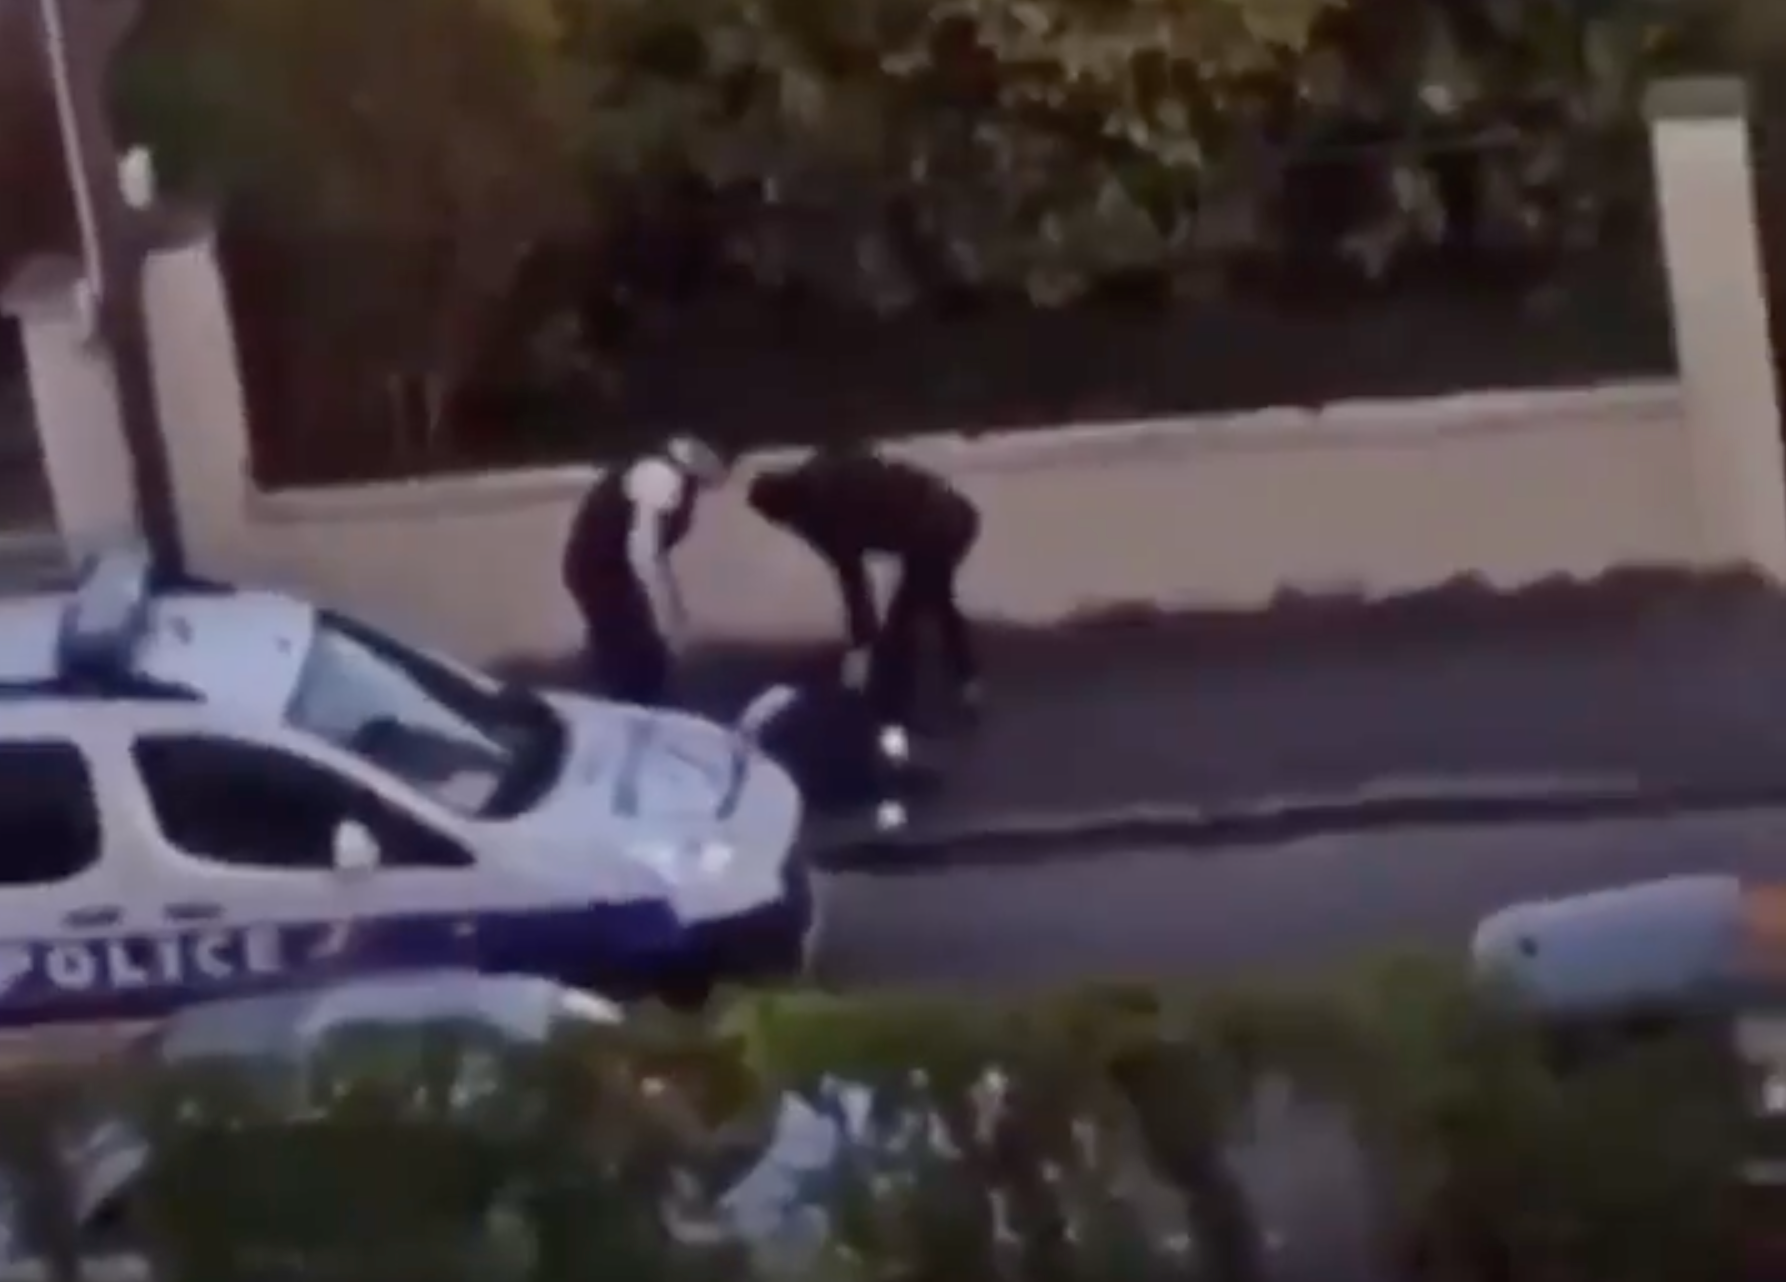 Officers in France appear to beat a person caught outside amid the coronavirus lockdown